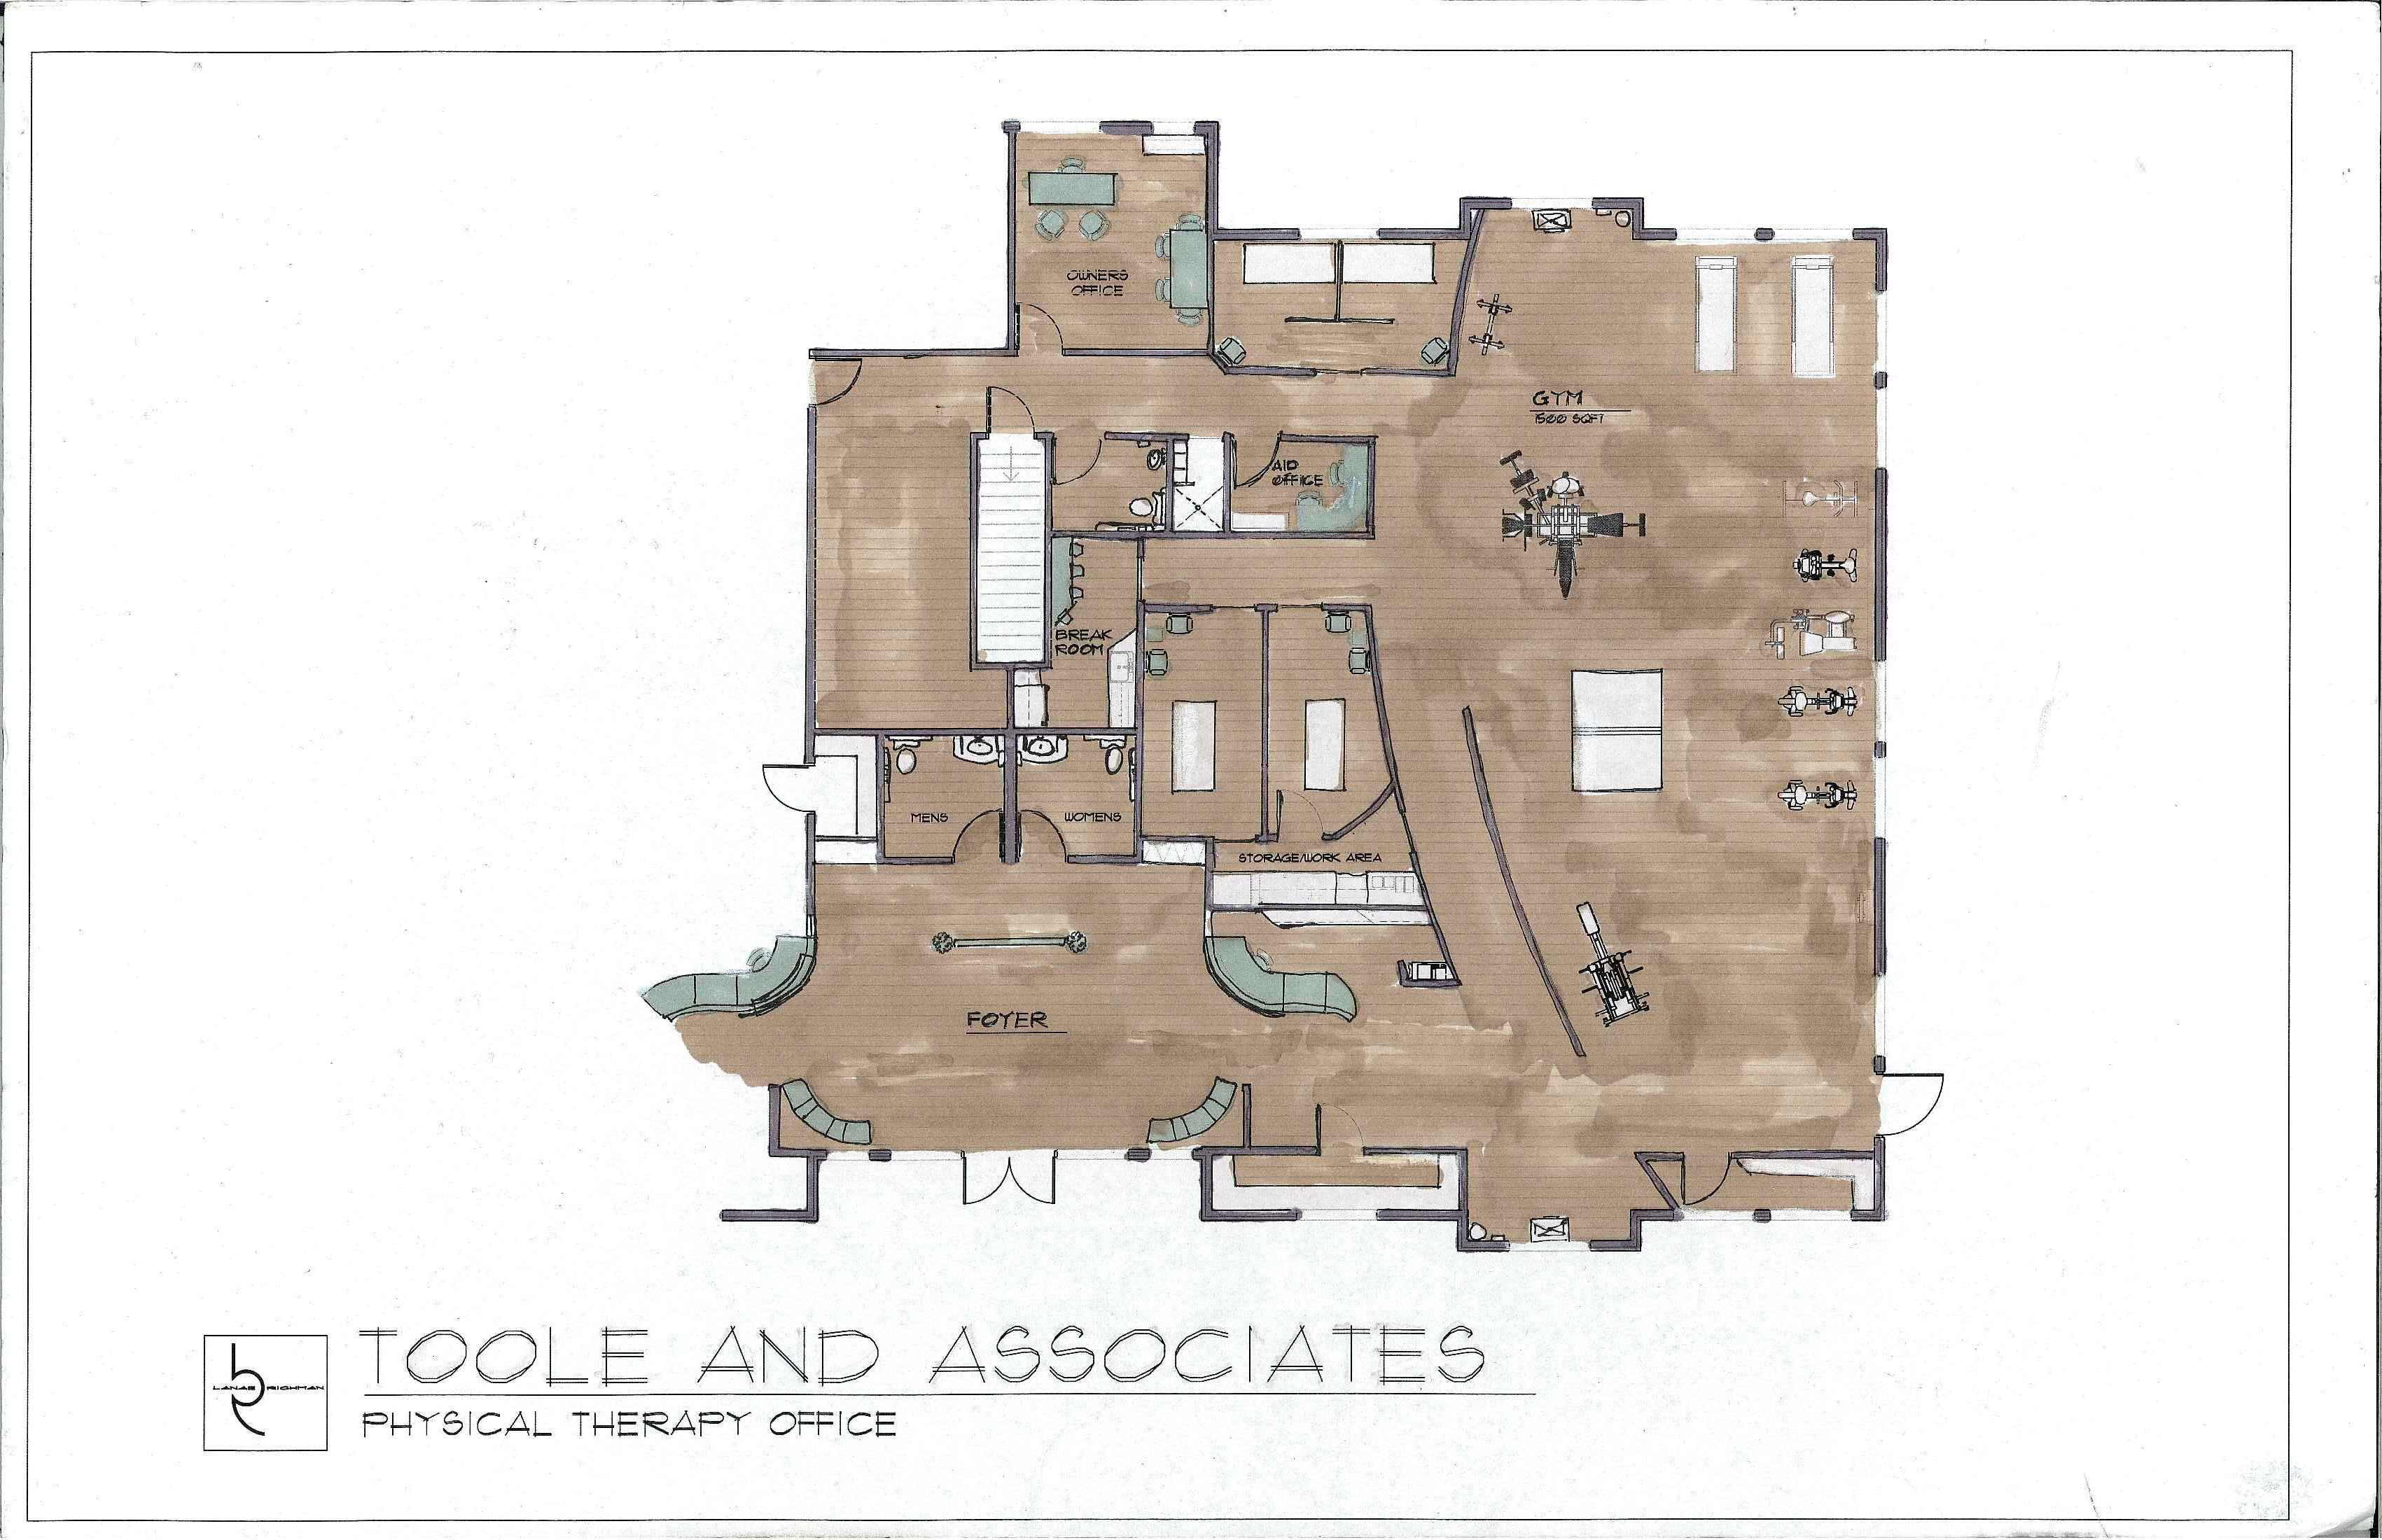 Floor Plans For Physical Therapy Clinic: Physical Therapy Floor Plan